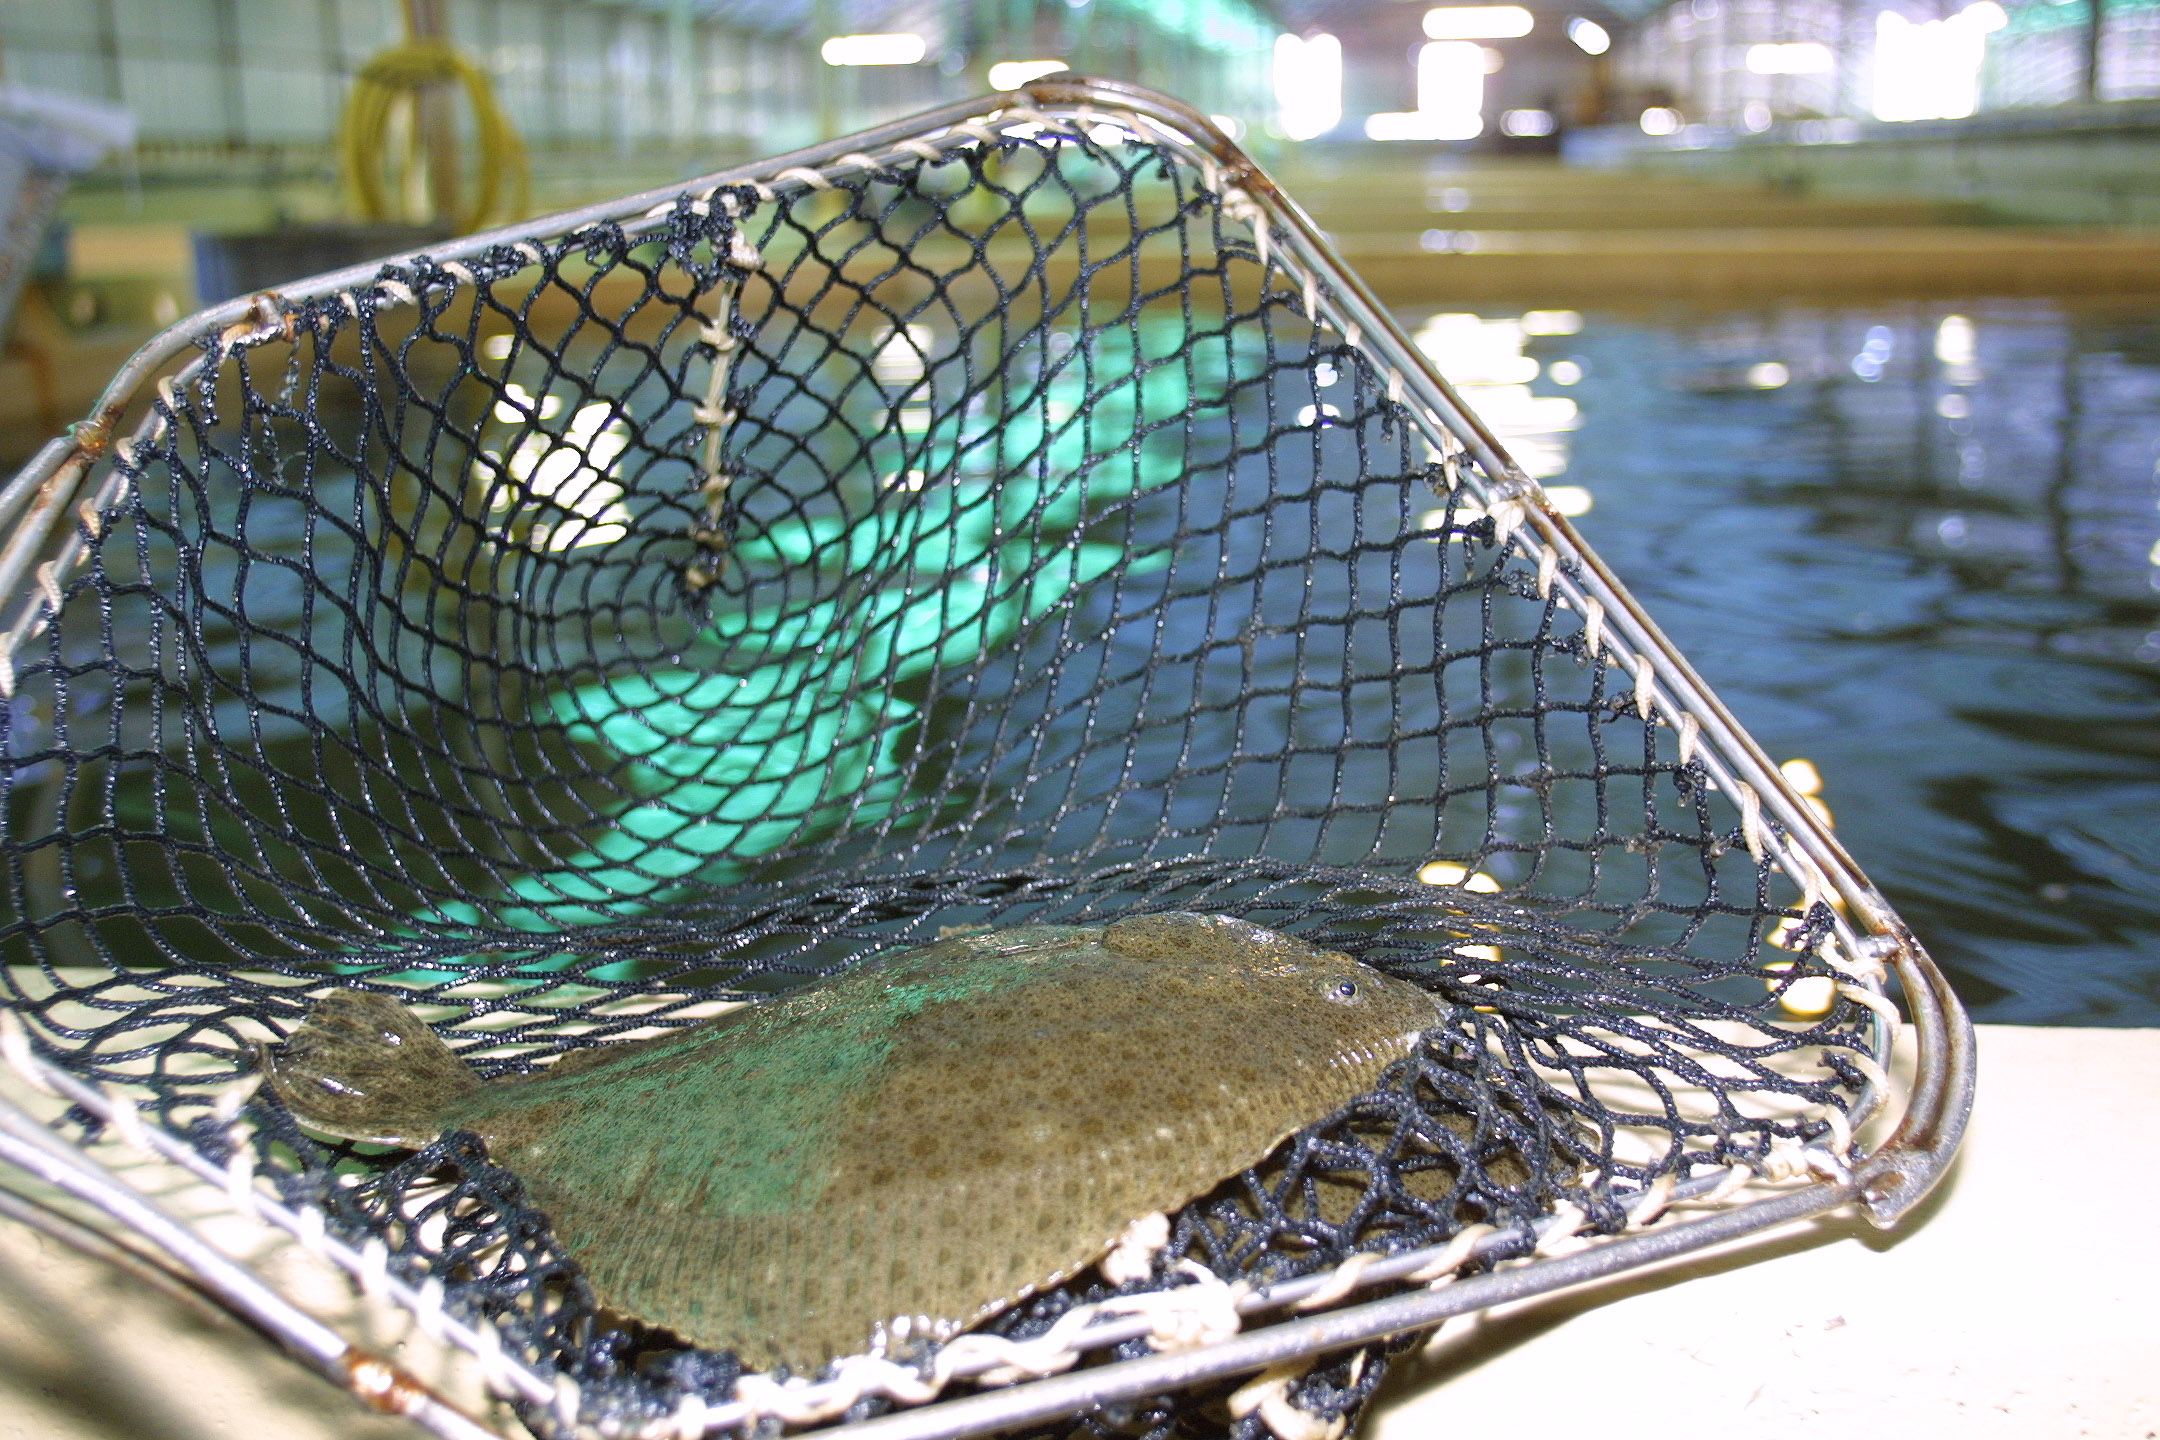 France Turbot in net.JPG